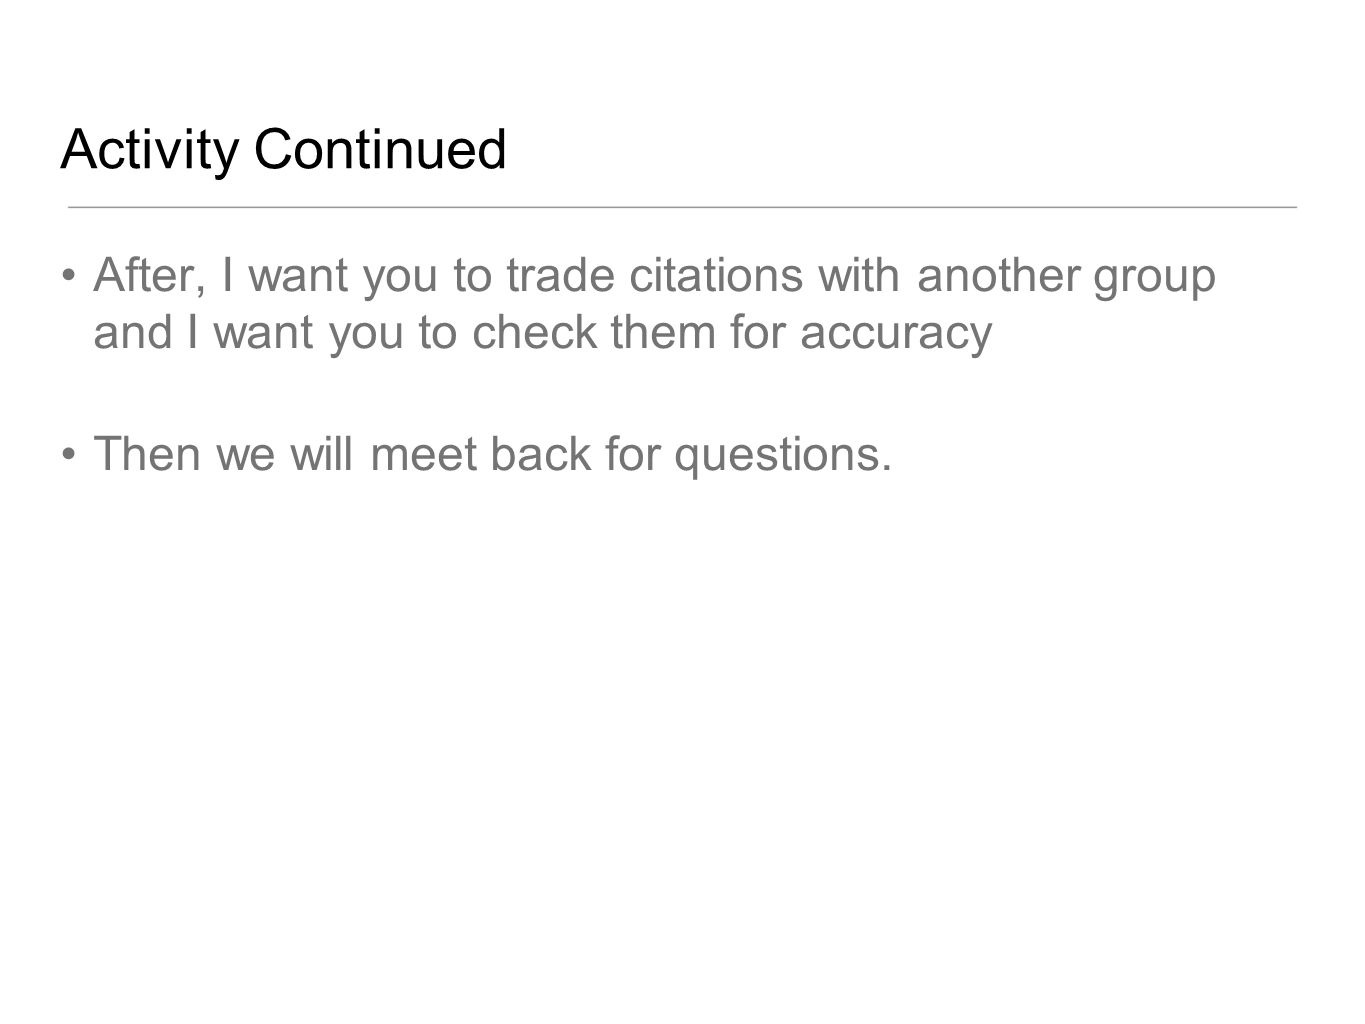 Activity Continued After, I want you to trade citations with another group and I want you to check them for accuracy.